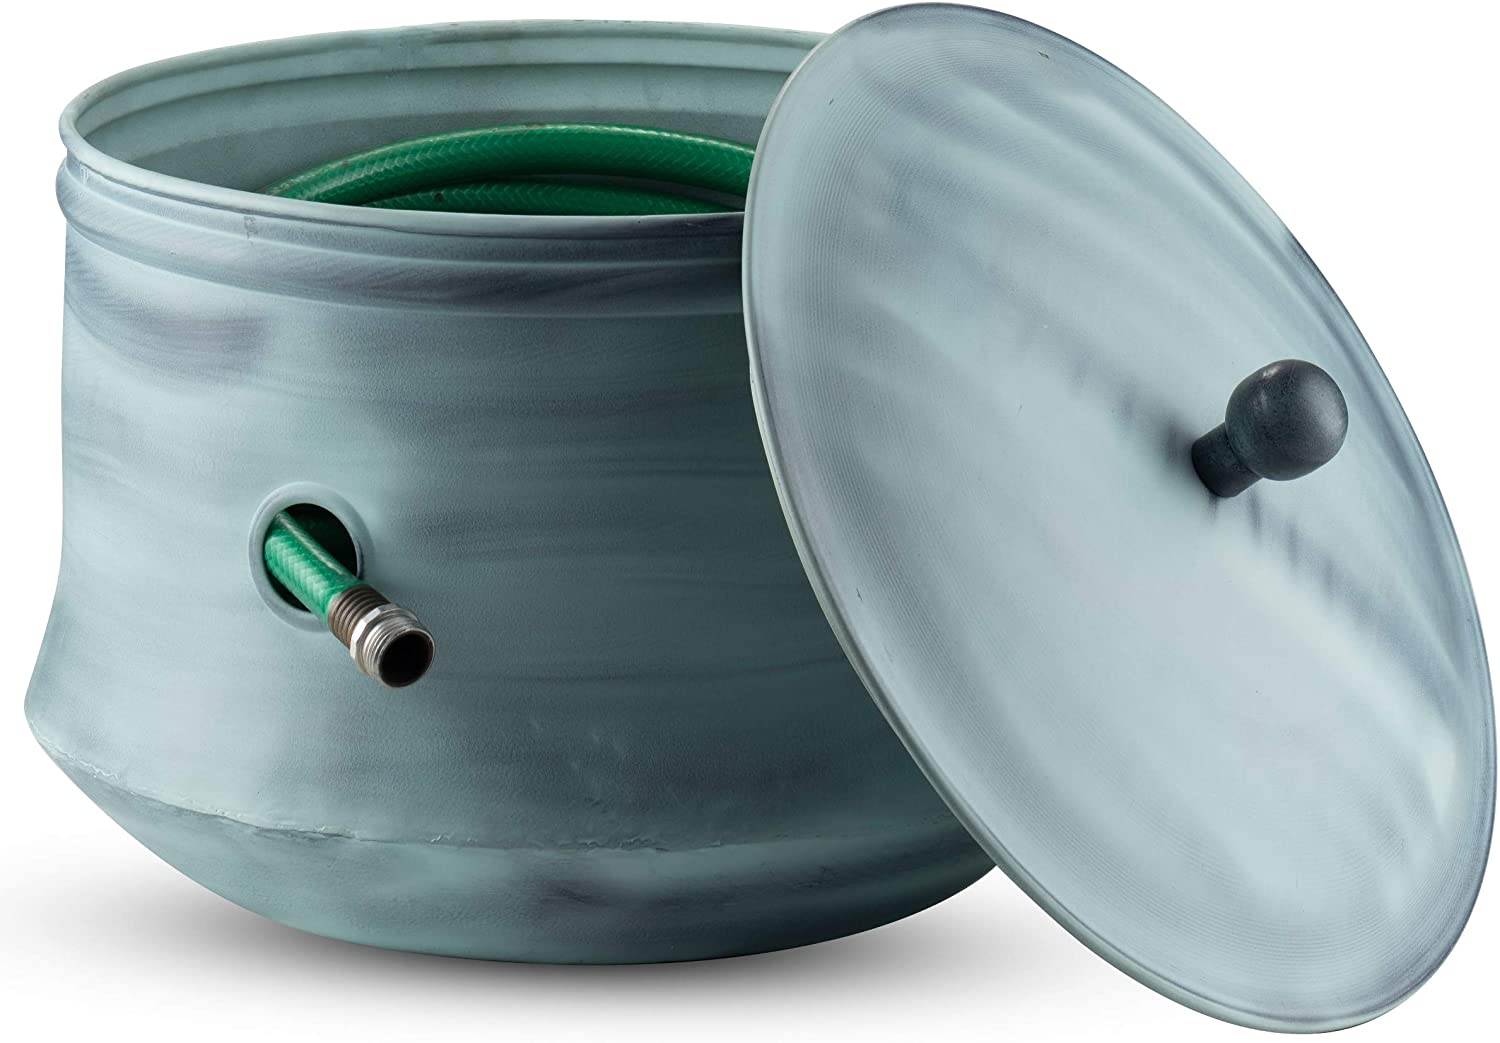 LifeSmart Decorative Garden Hose Pot Storage Holder with Lid Copper Finish 12 x 16 Inches Green Finish